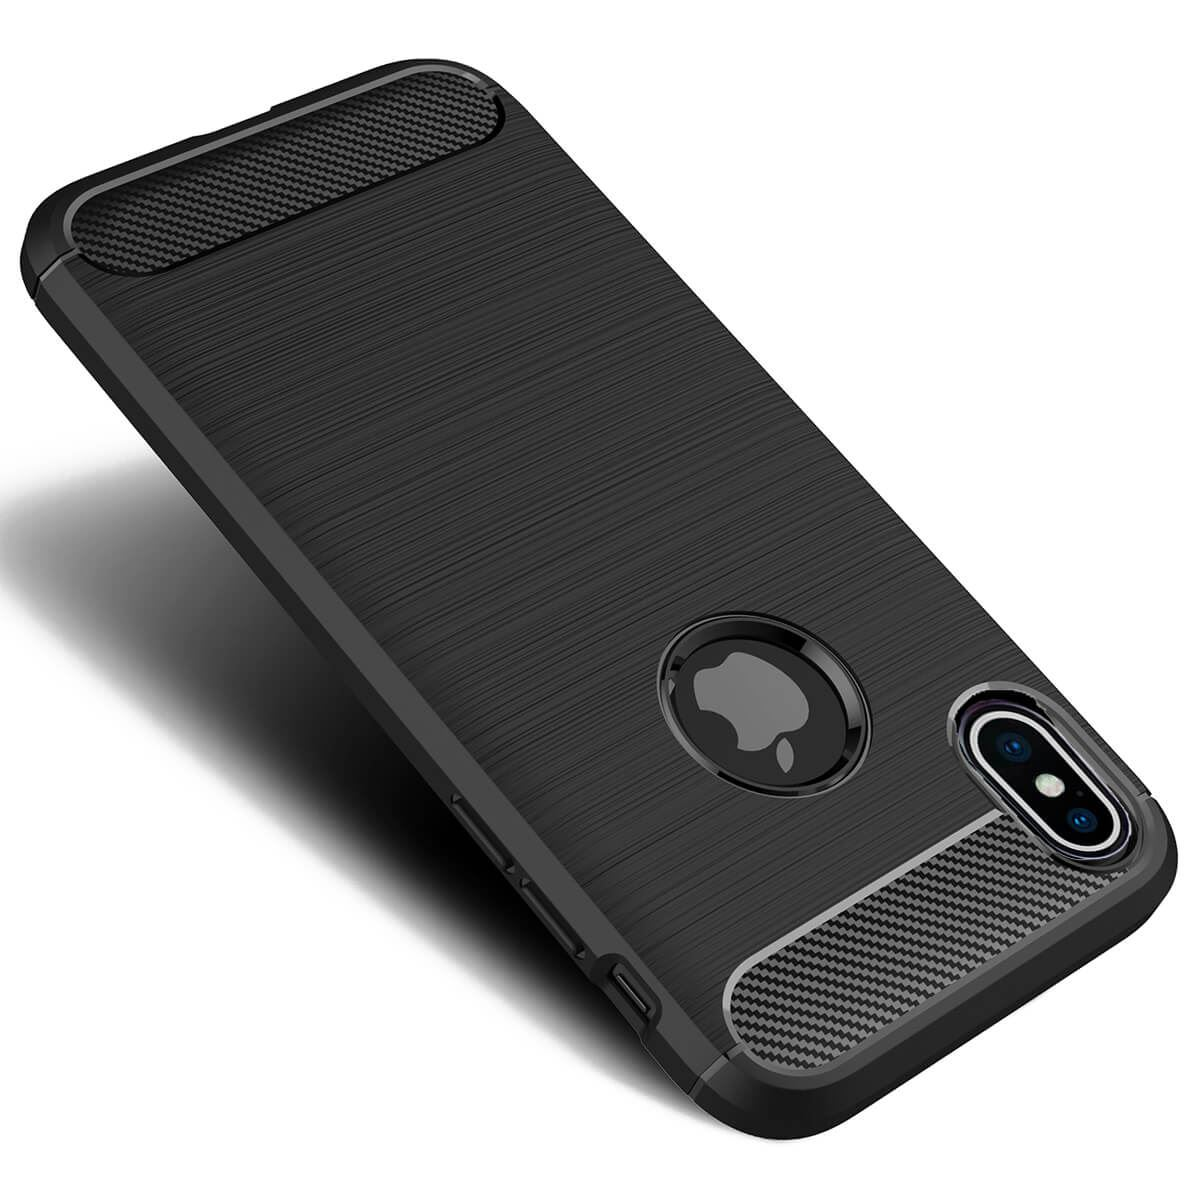 Shockproof-Bumper-Case-Apple-iPhone-10-X-8-7-6s-Se-5s-5-Luxury-Ultra-Slim-Cover thumbnail 5